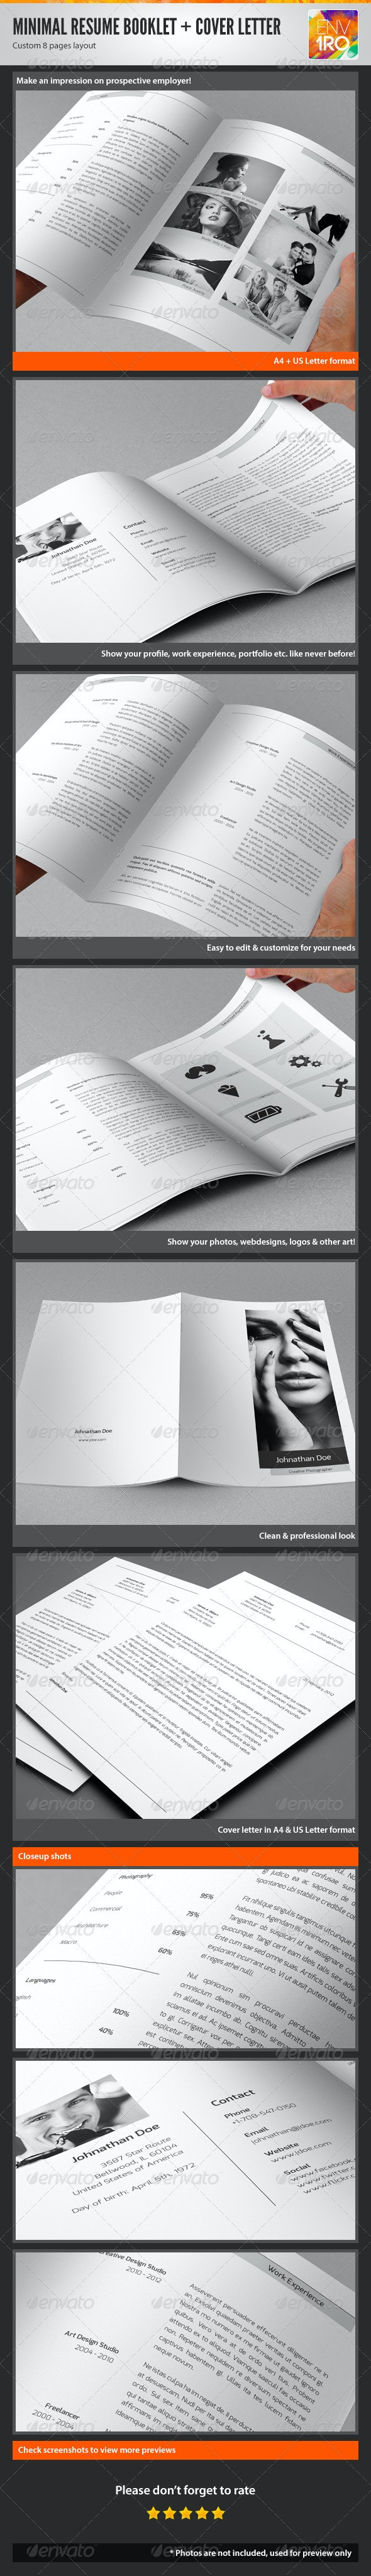 Minimal Resume Booklet & Cover Letter - Resumes Stationery